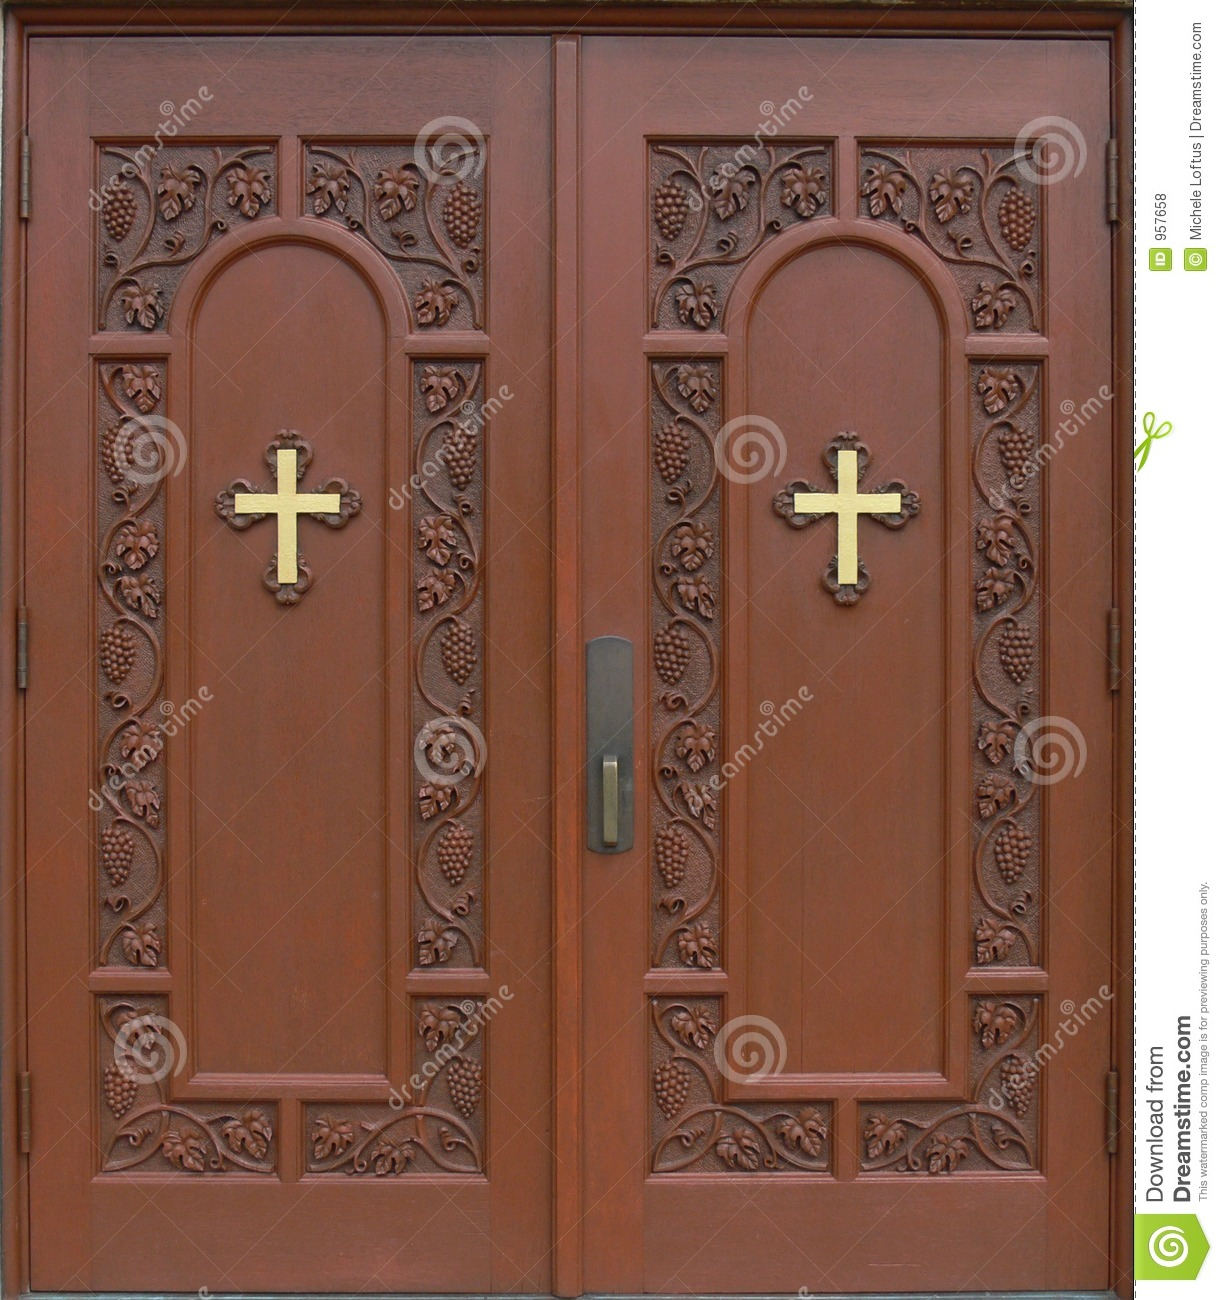 Church door clipart.